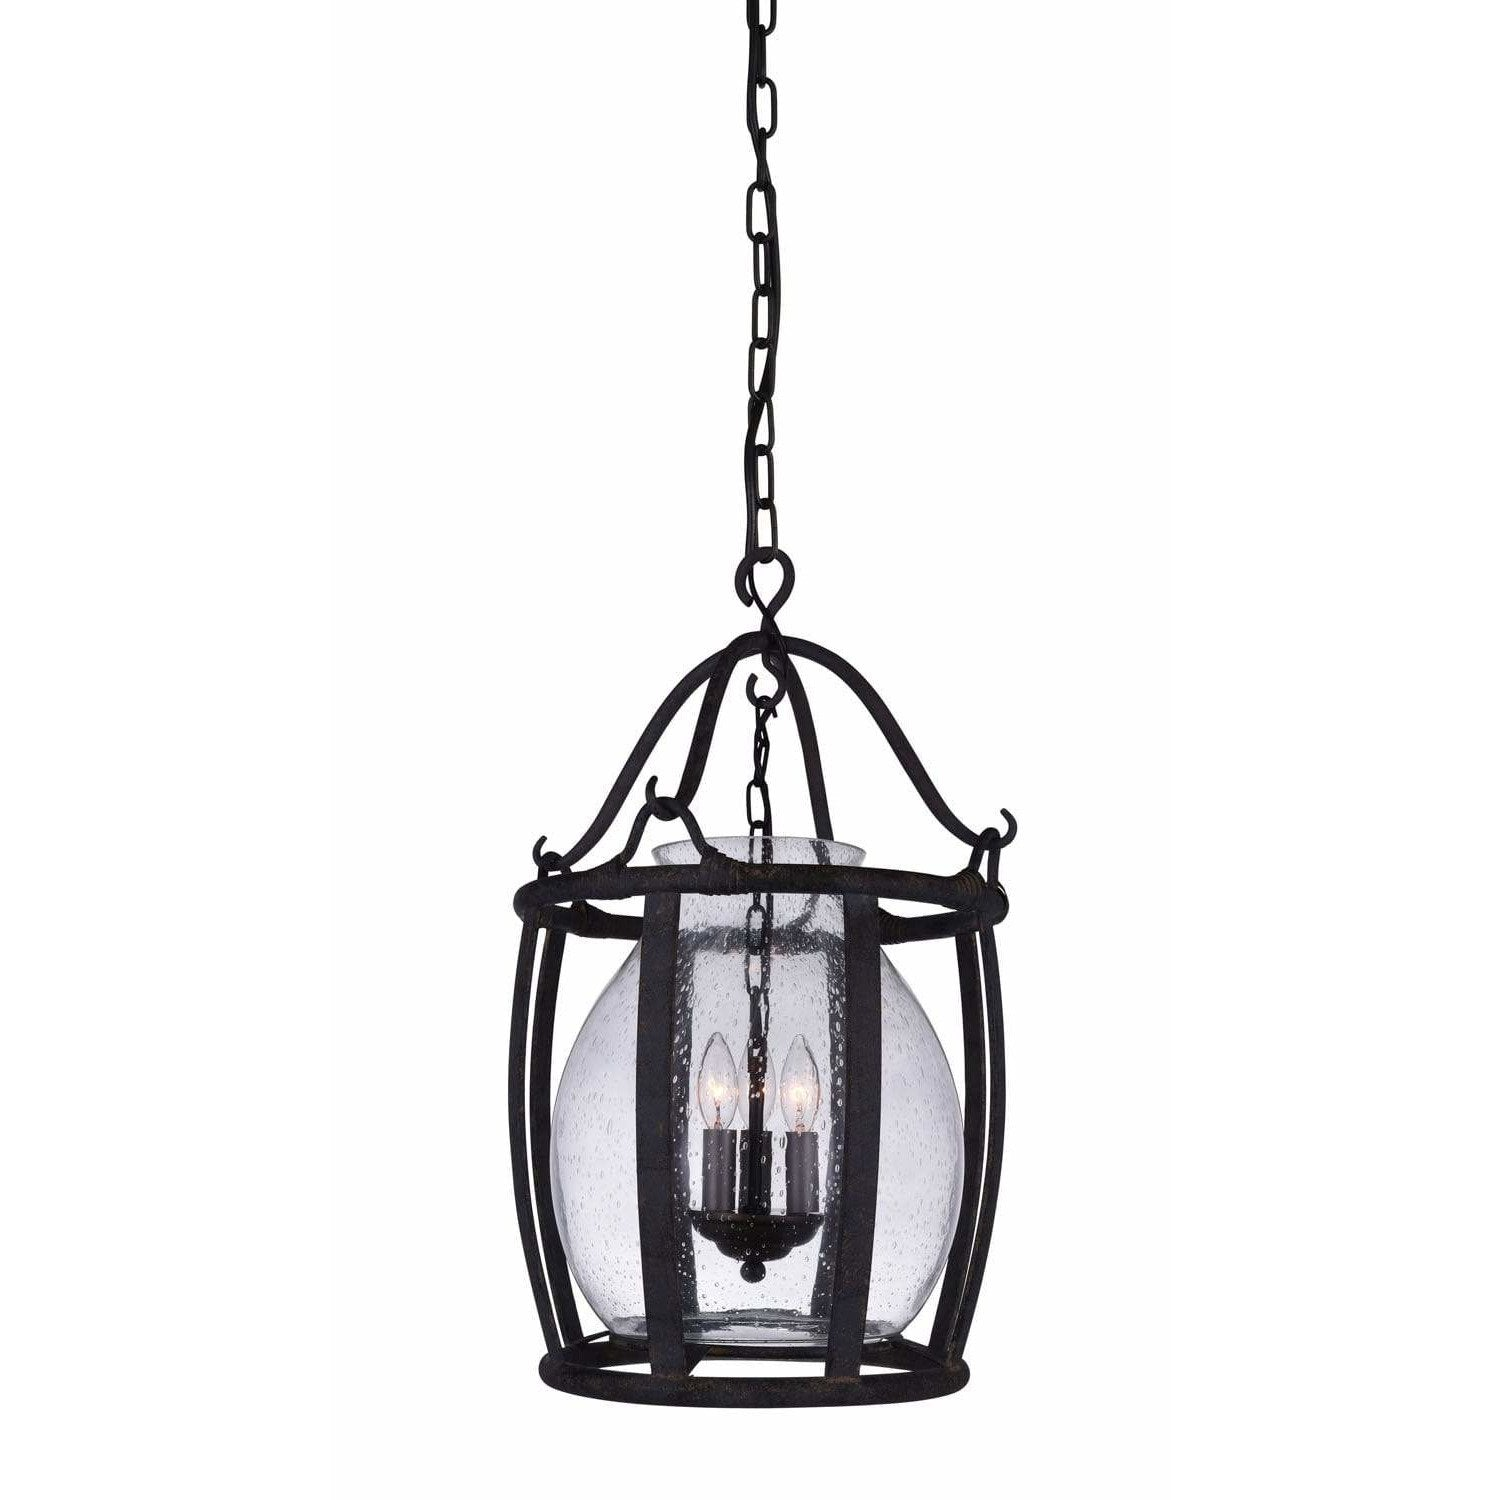 CWI Lighting Pendants Antique Black Imperial 3 Light Up Pendant with Antique Black finish by CWI Lighting 9925P16-3-216